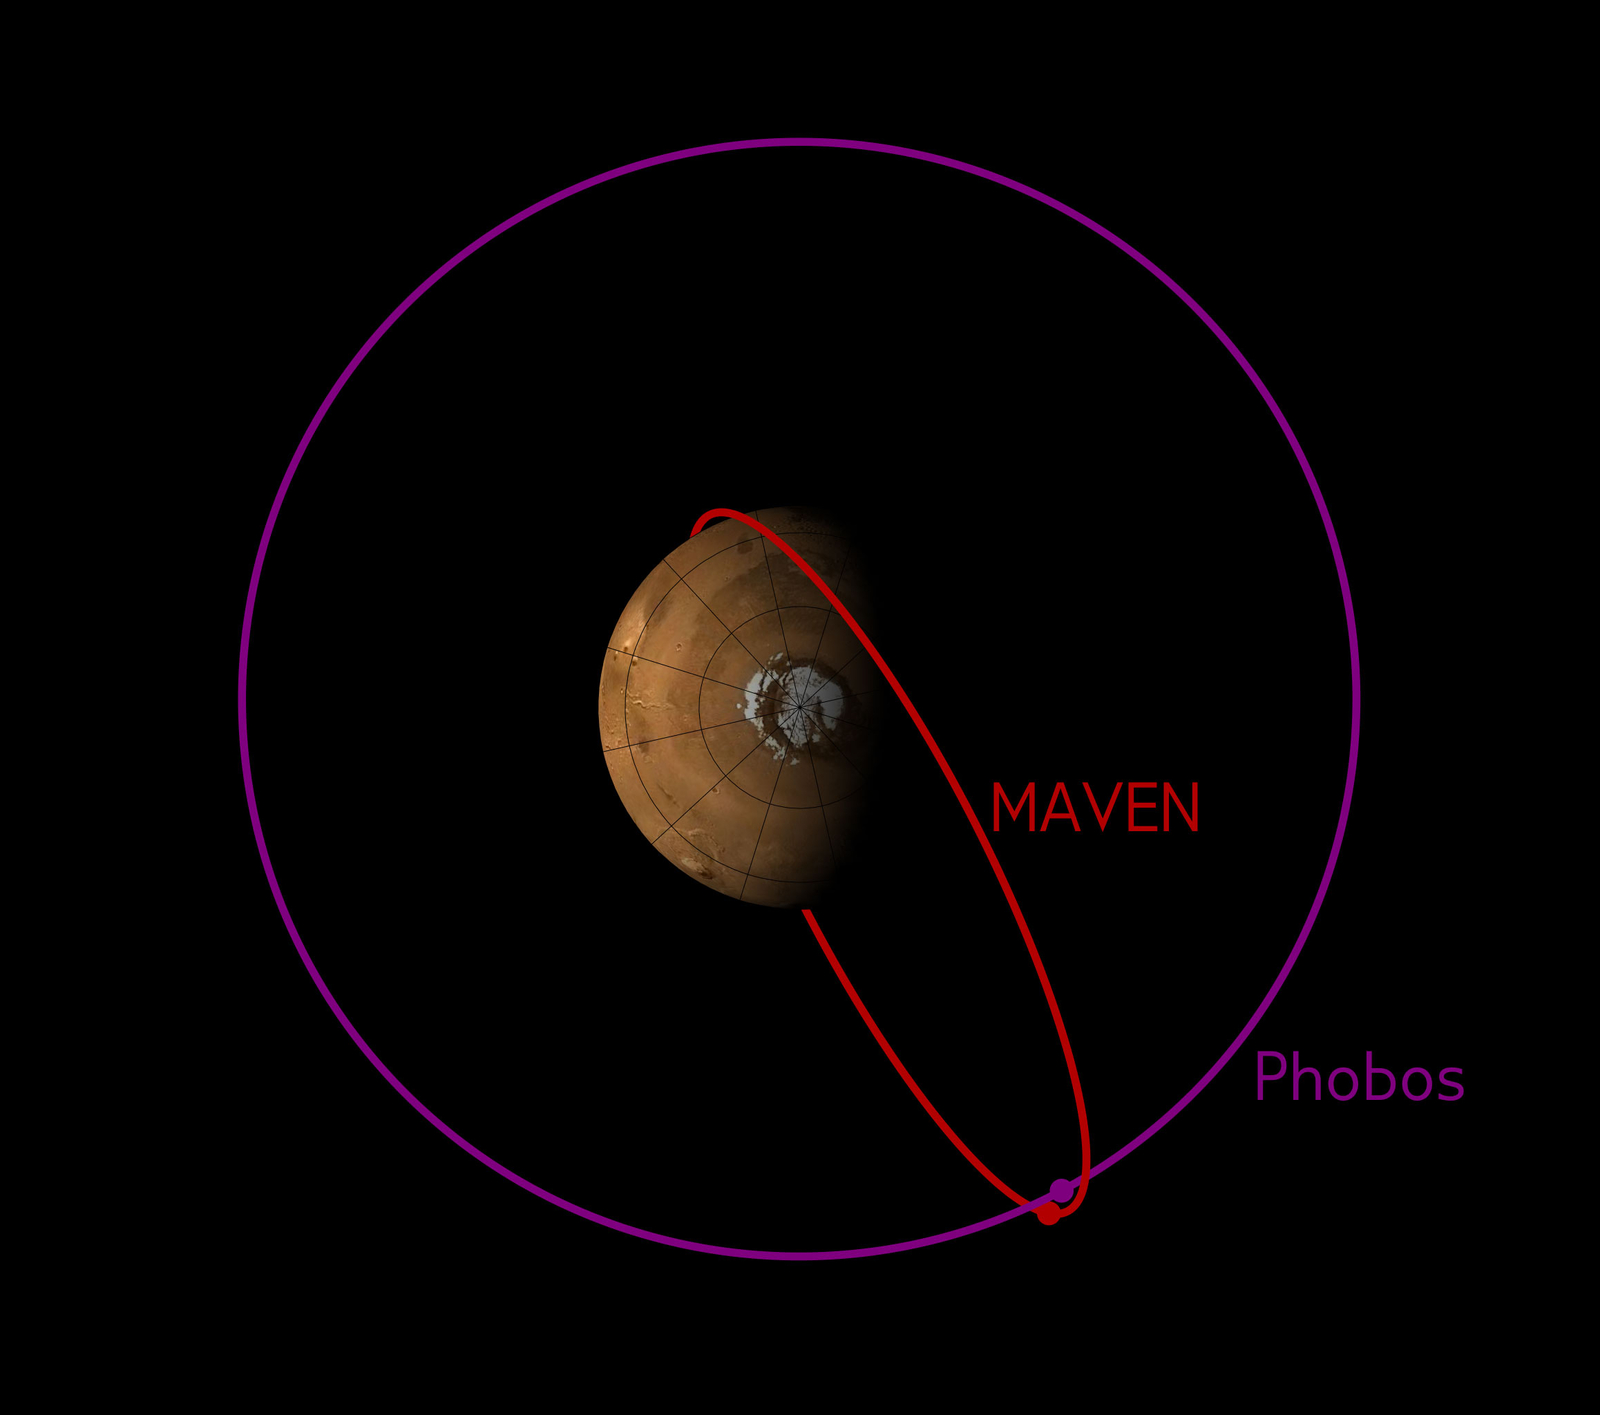 The orbit of MAVEN sometimes crosses the orbit of Phobos. This image shows the configuration of the two orbits in early December 2015, when MAVEN's Phobos observations were made.